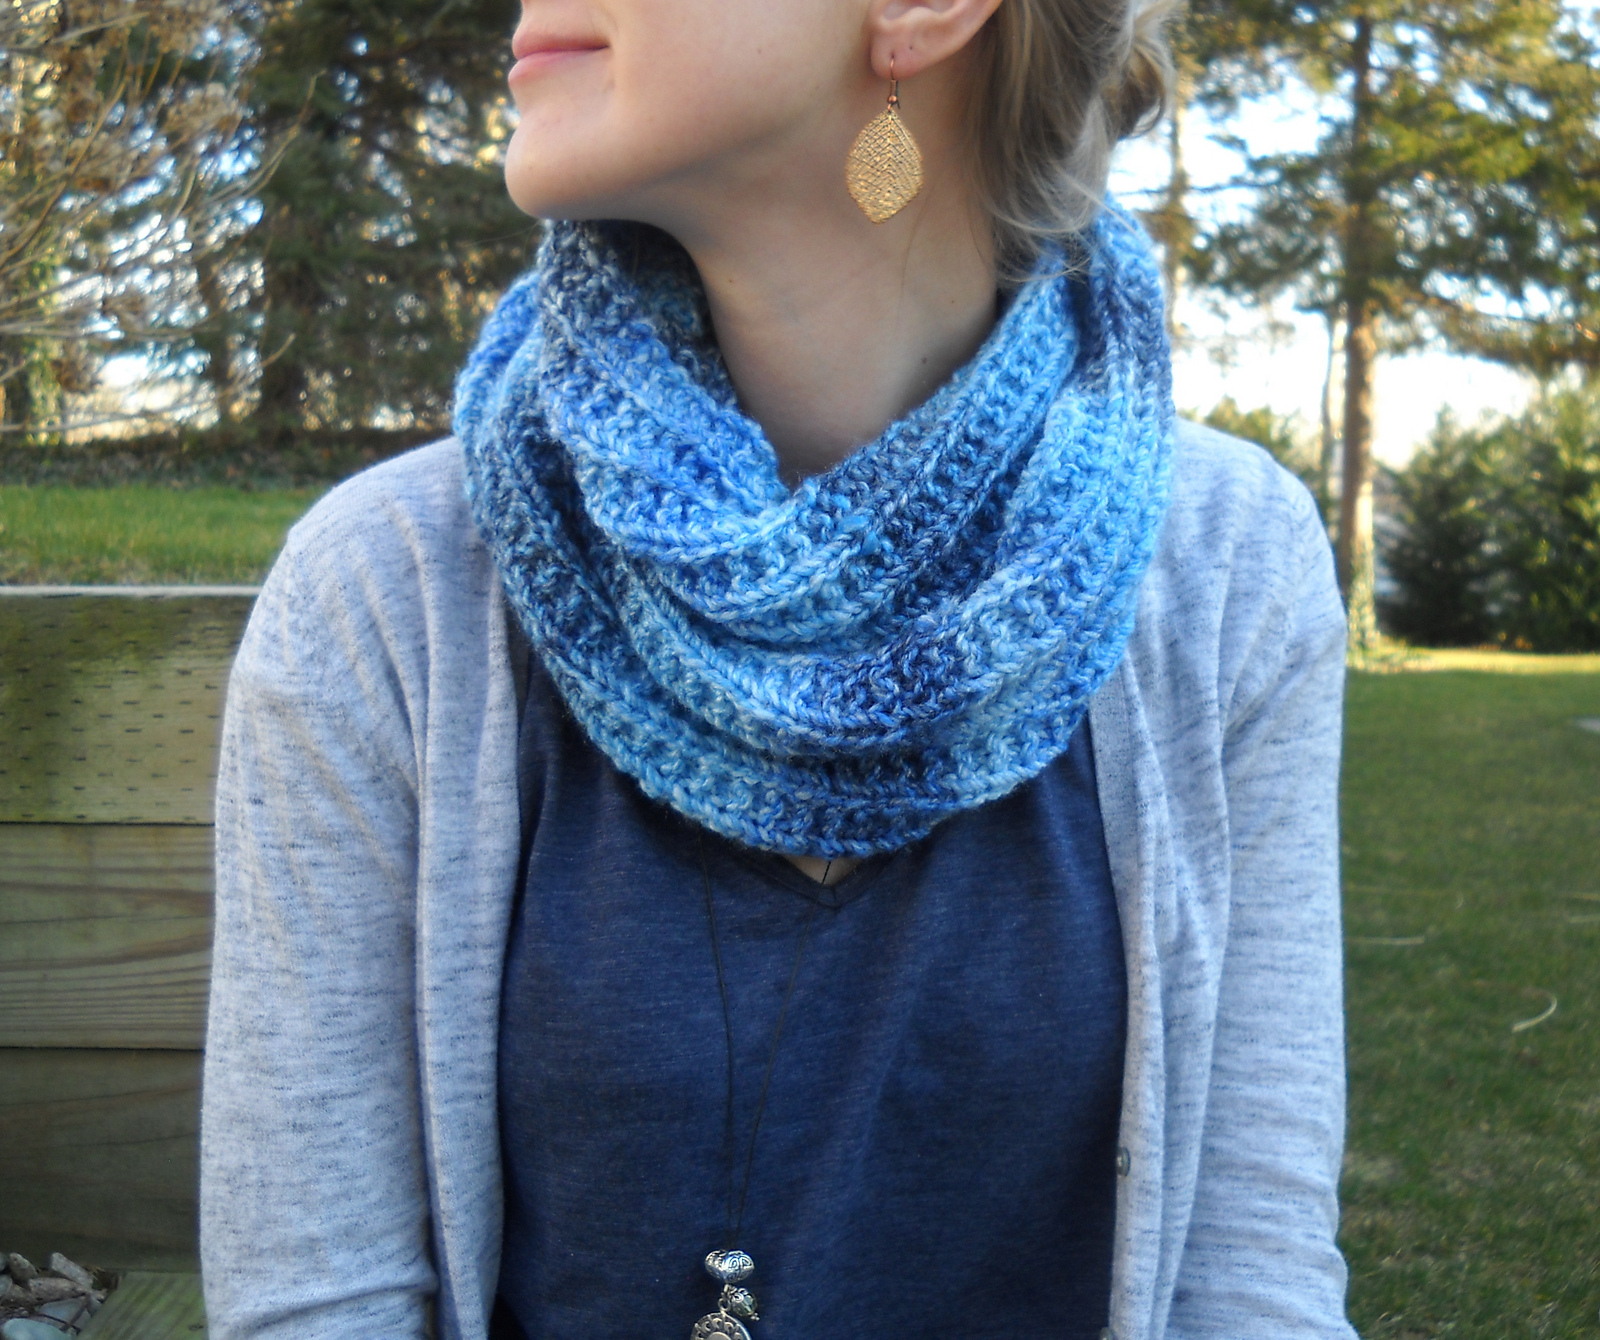 wiseknits: Blues Infinity Scarf